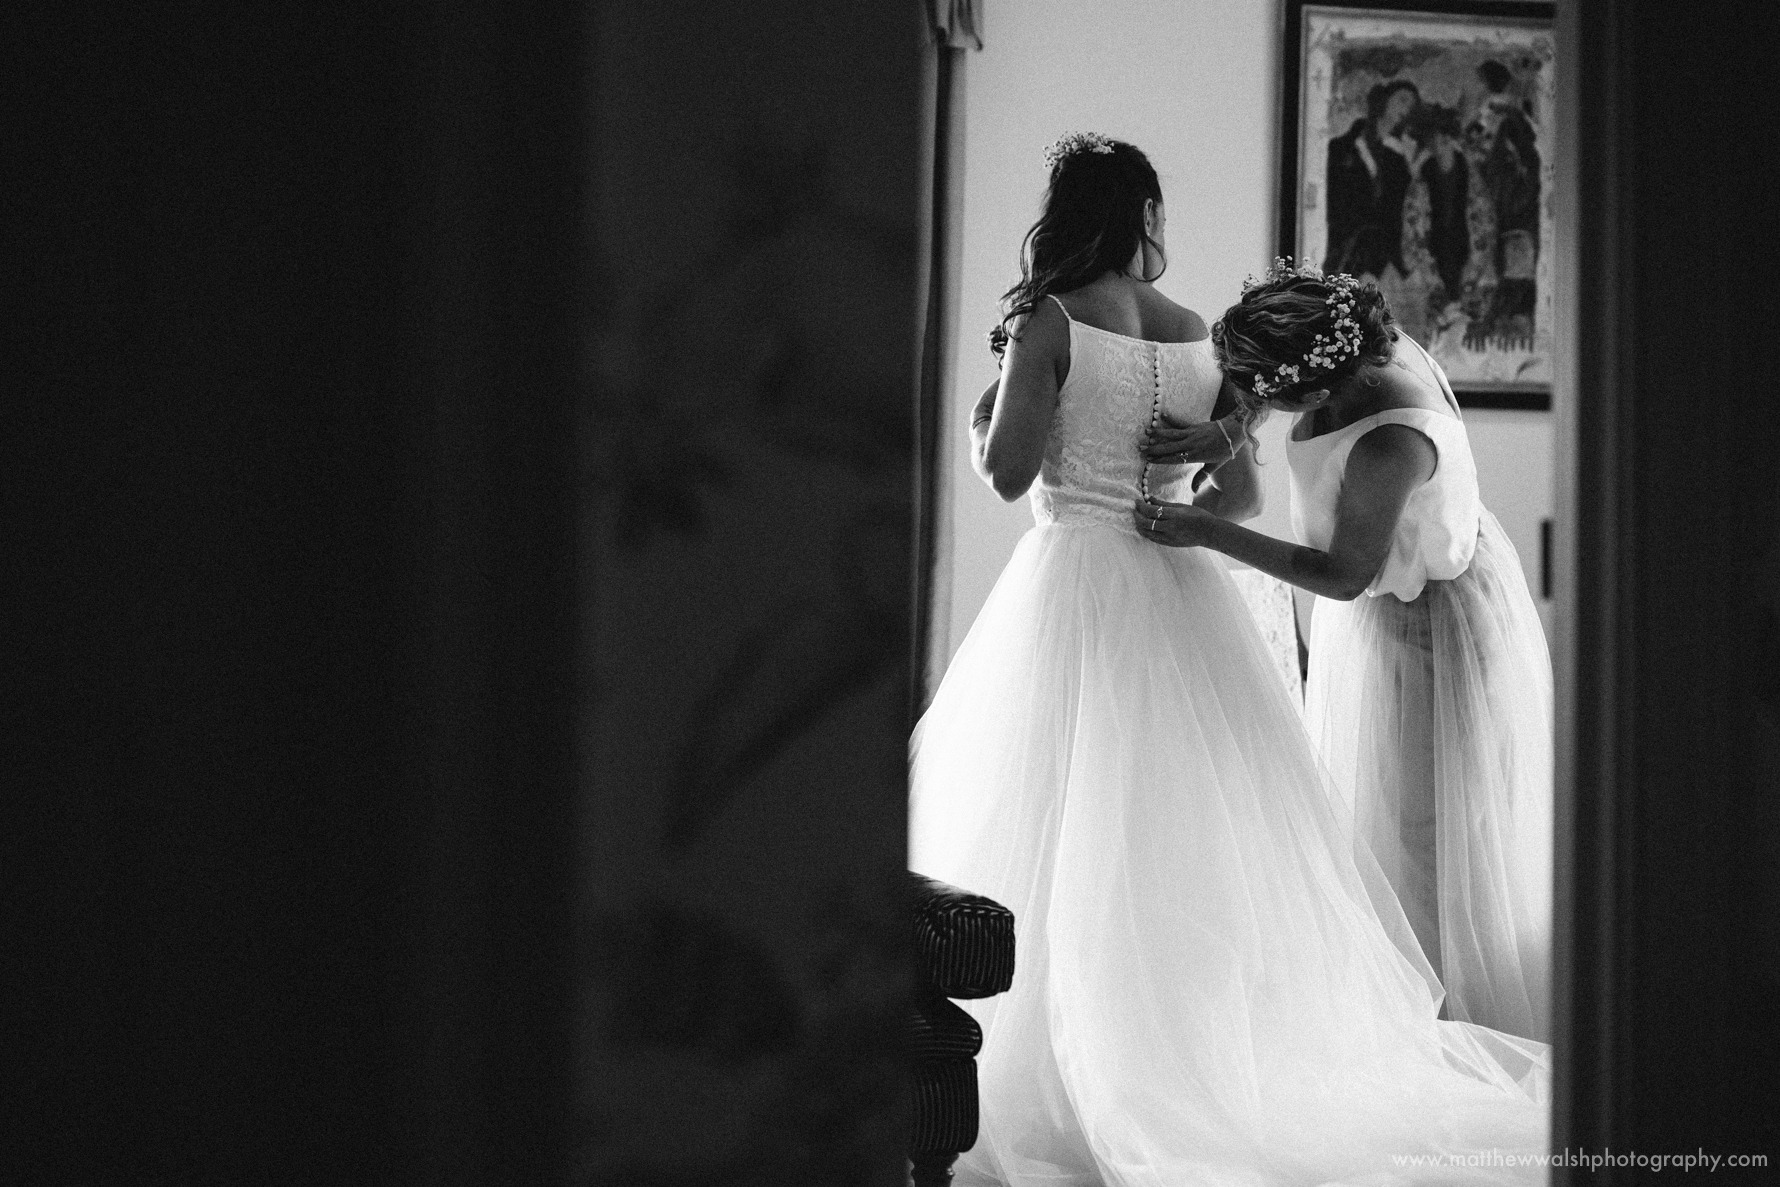 Bridesmaid helping the bride put her wedding dress on